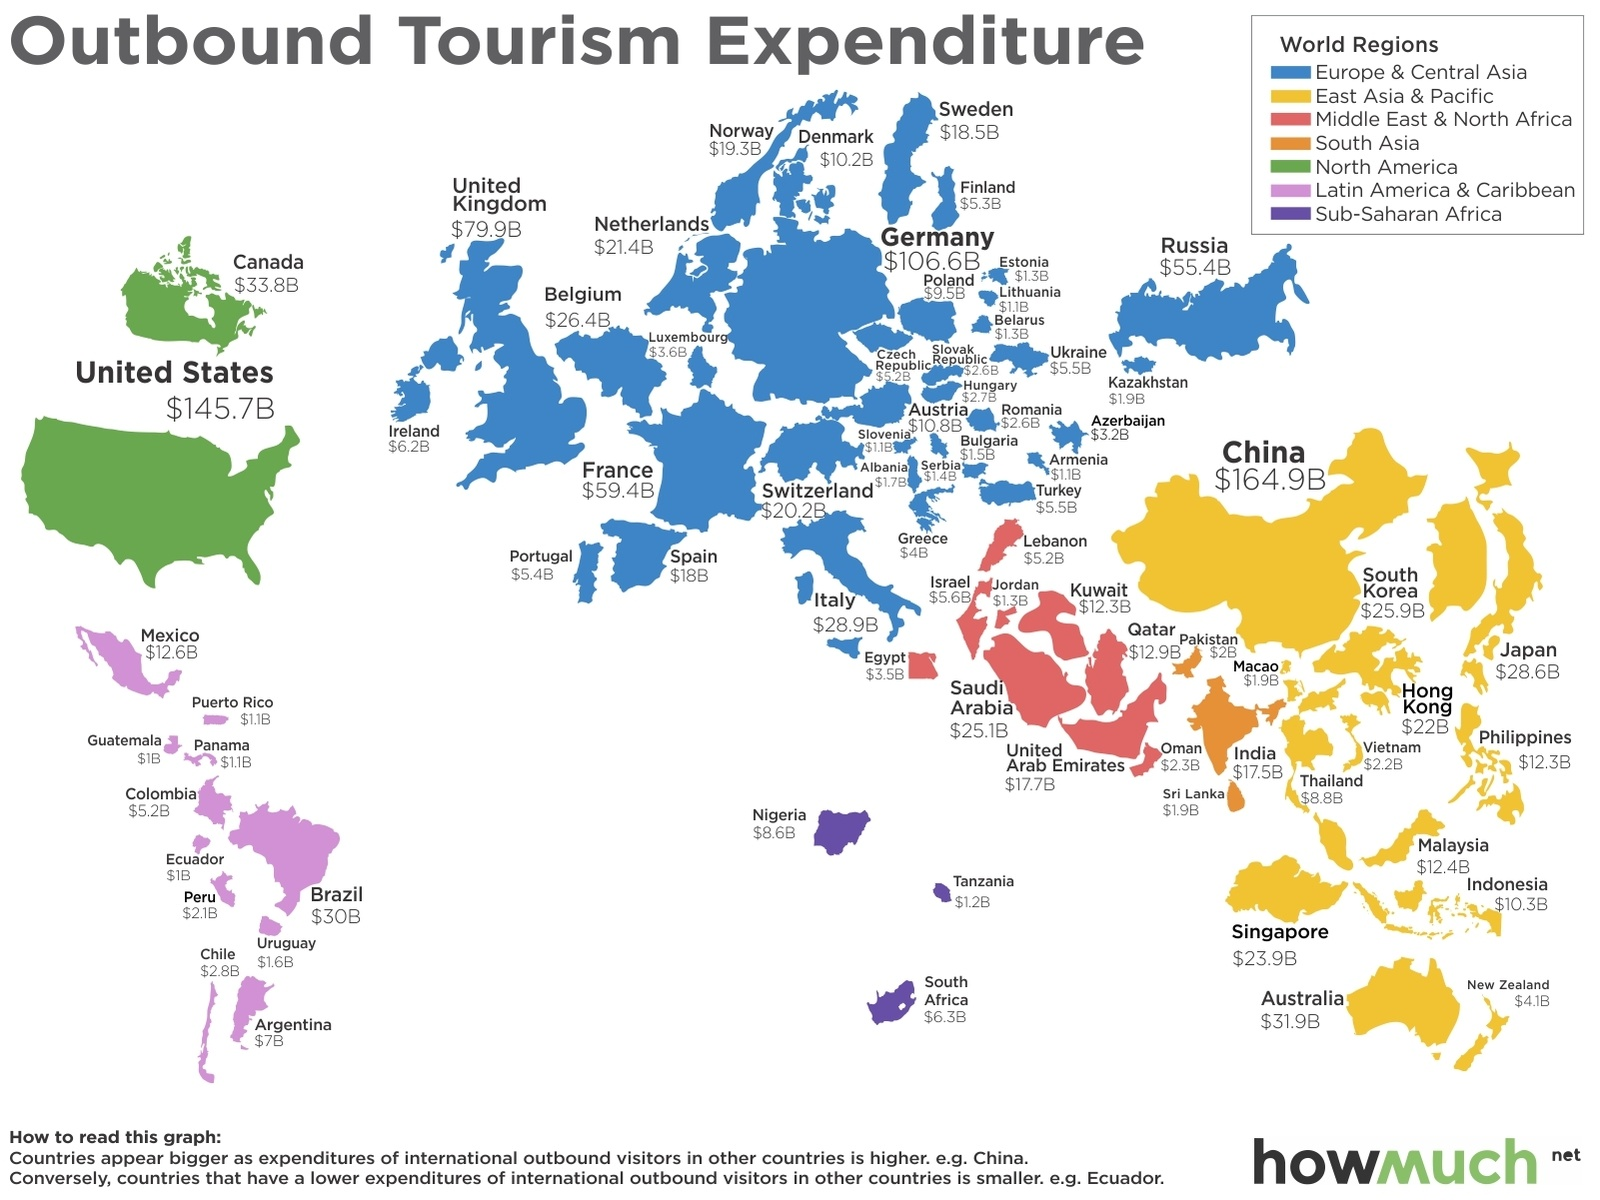 Outbound Tourism Expenditure